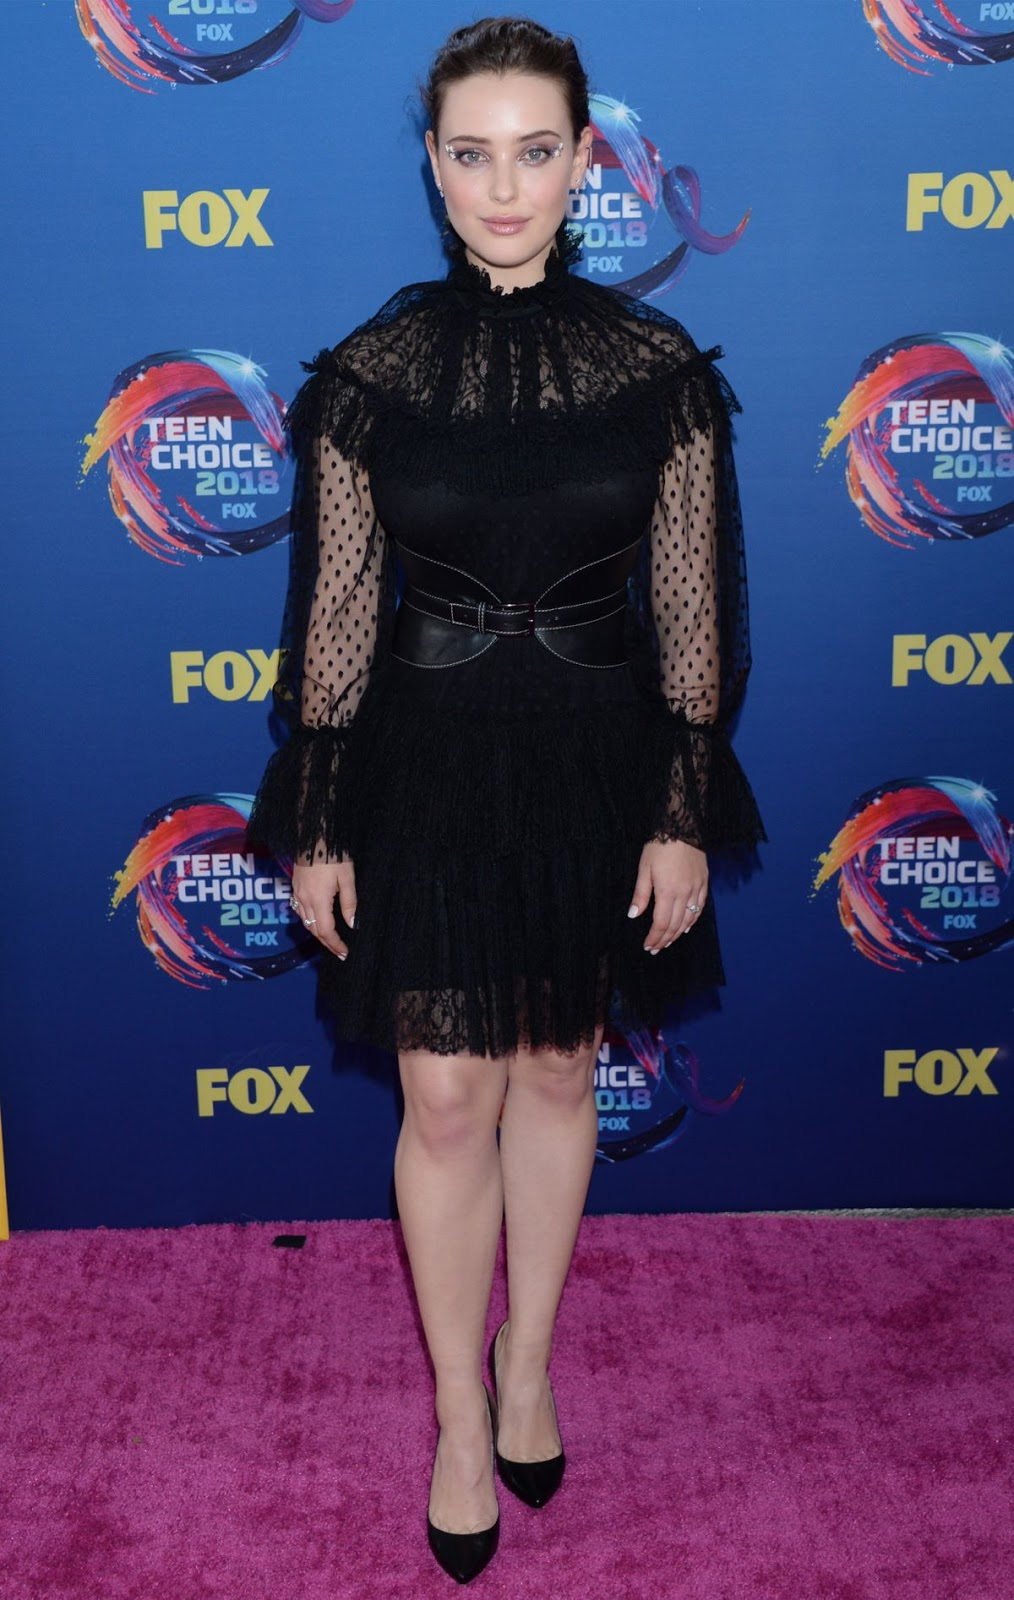 Katherine Langford goes gothic chic at the 2018 Teen Choice Awards